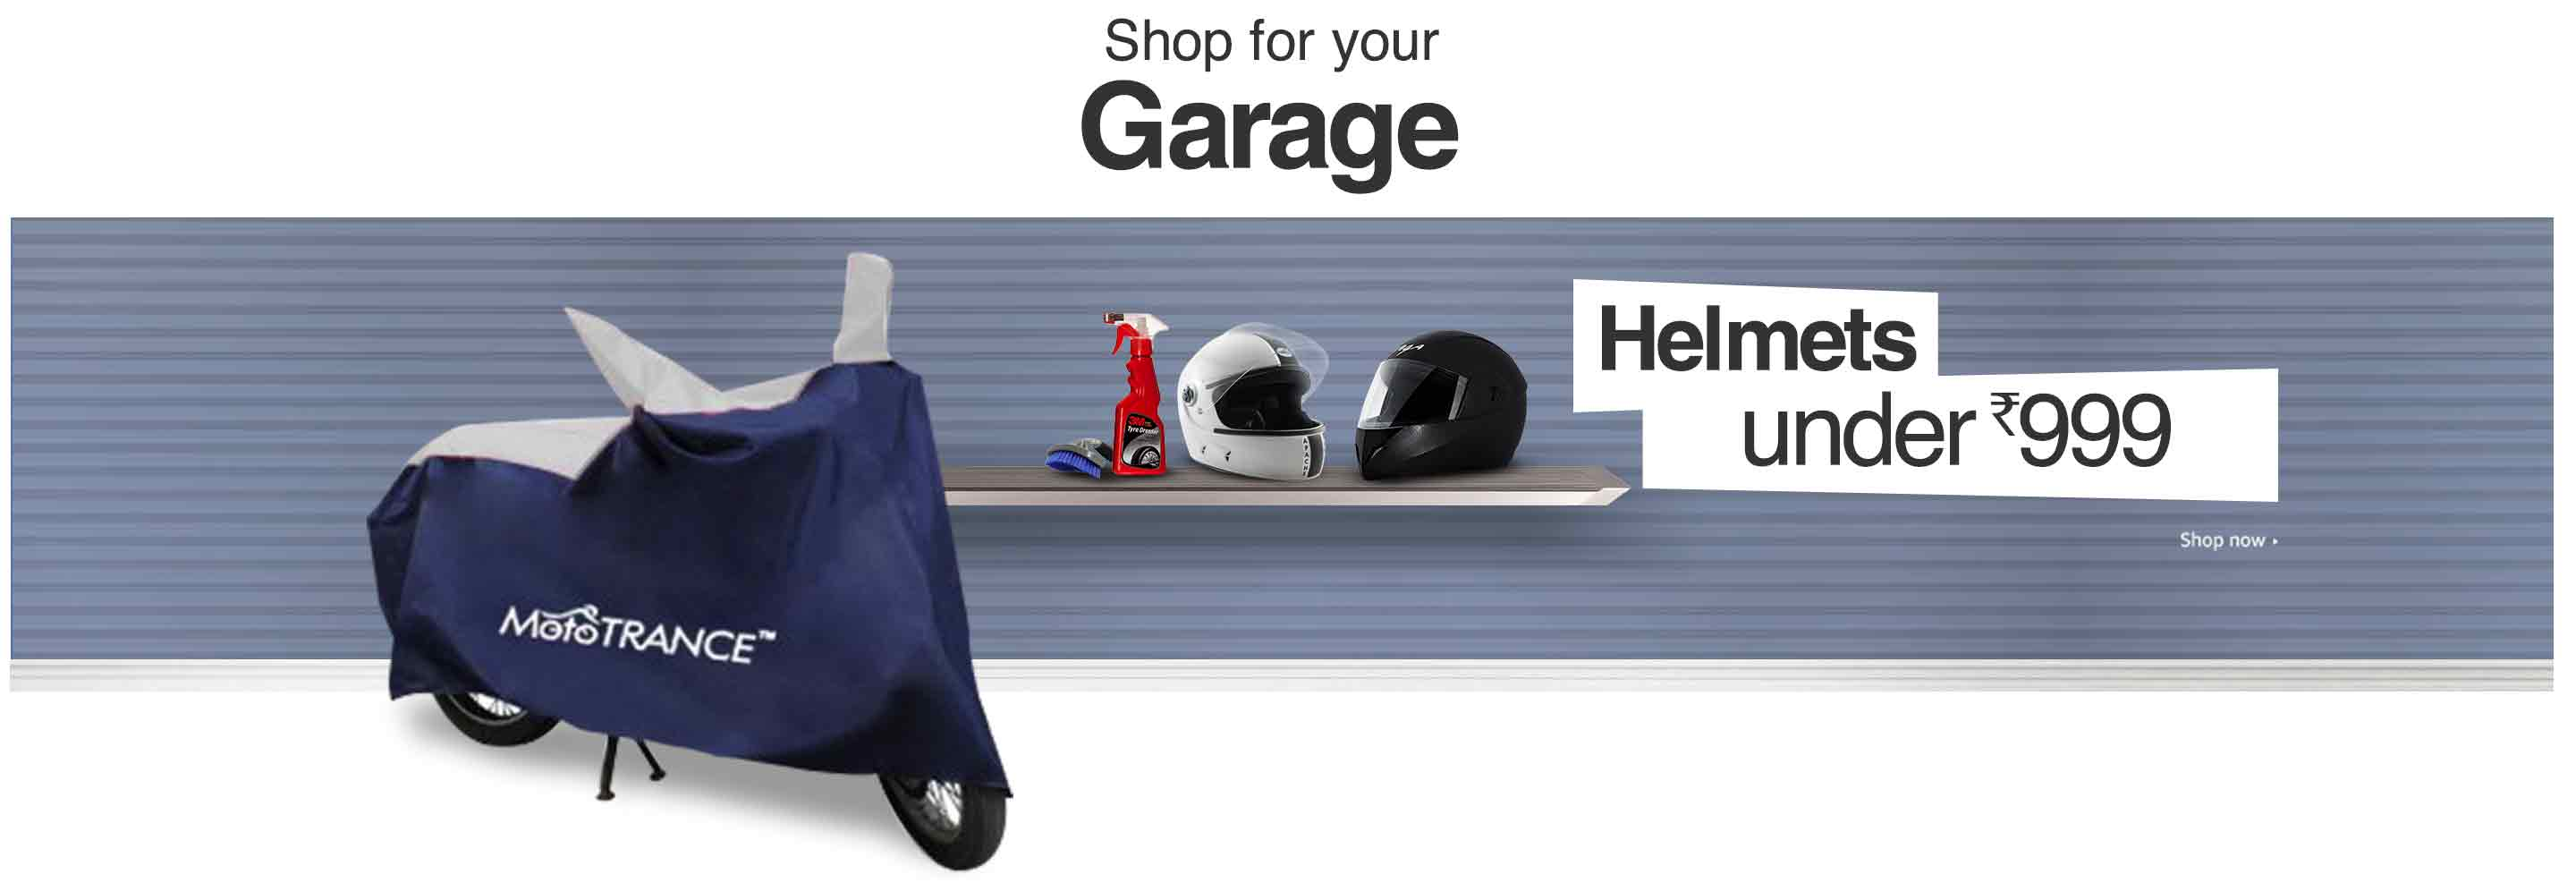 Shop for your garage